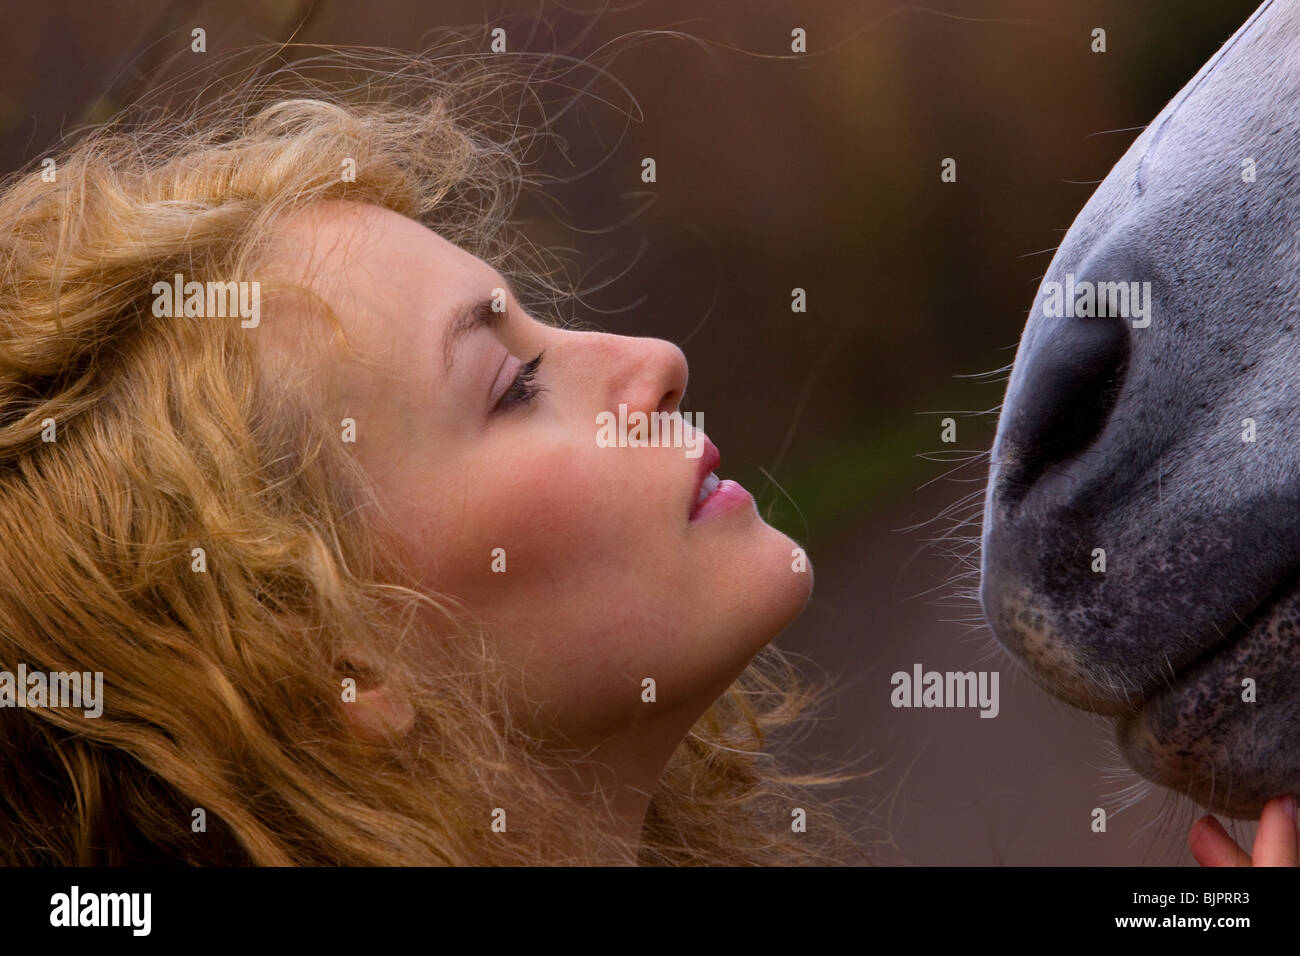 Girl with horse 4 - Stock Image